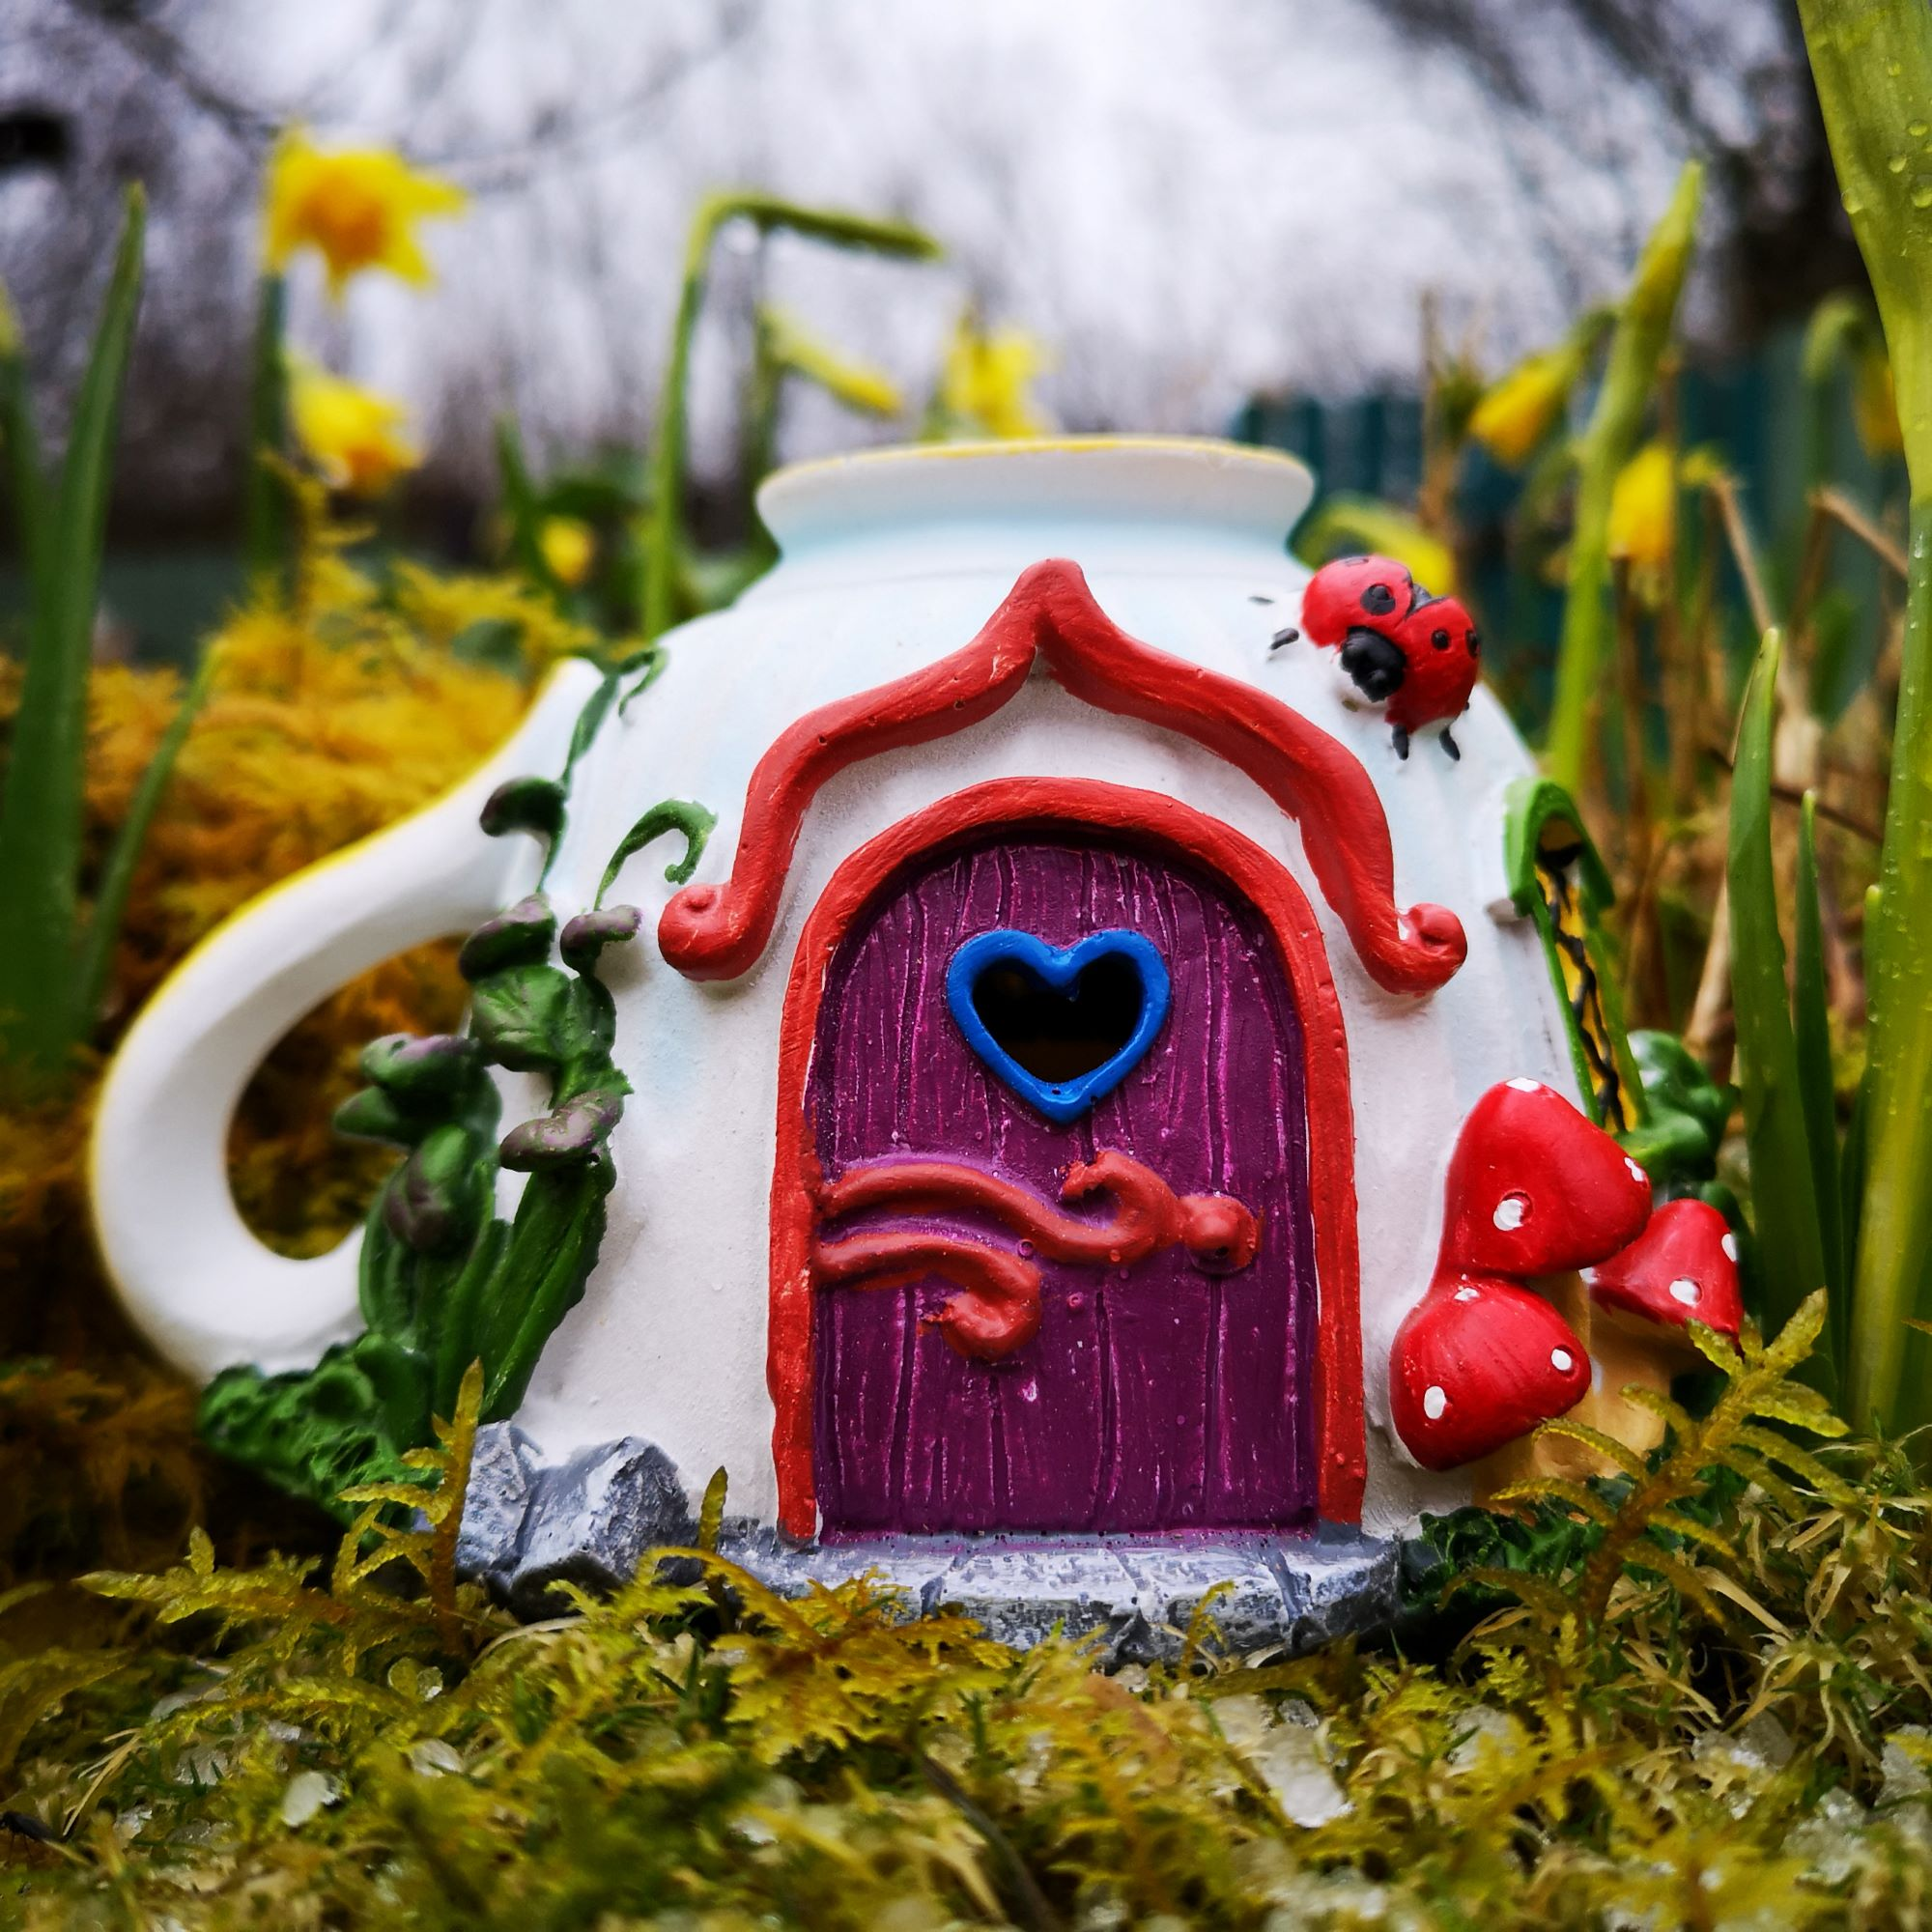 solar teacup fairy garden house